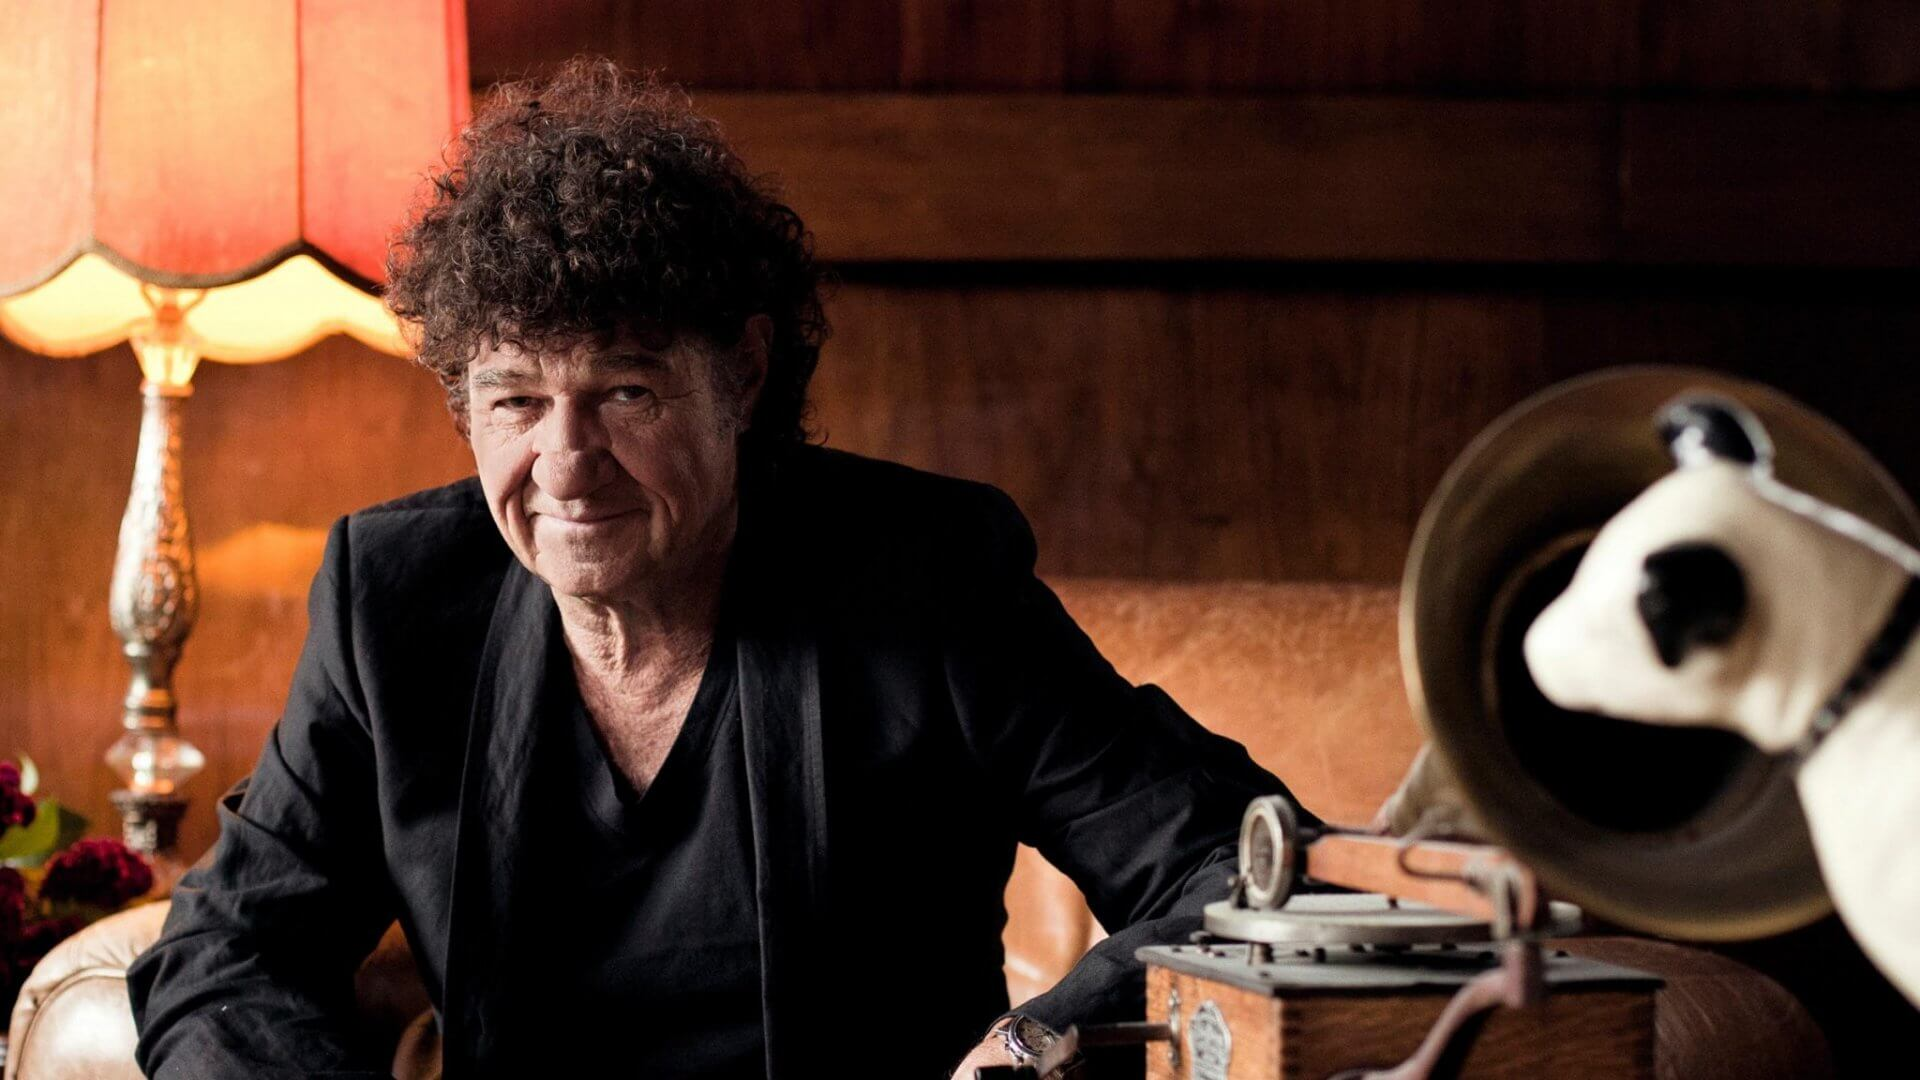 Robert Charlebois – places supplémentaires